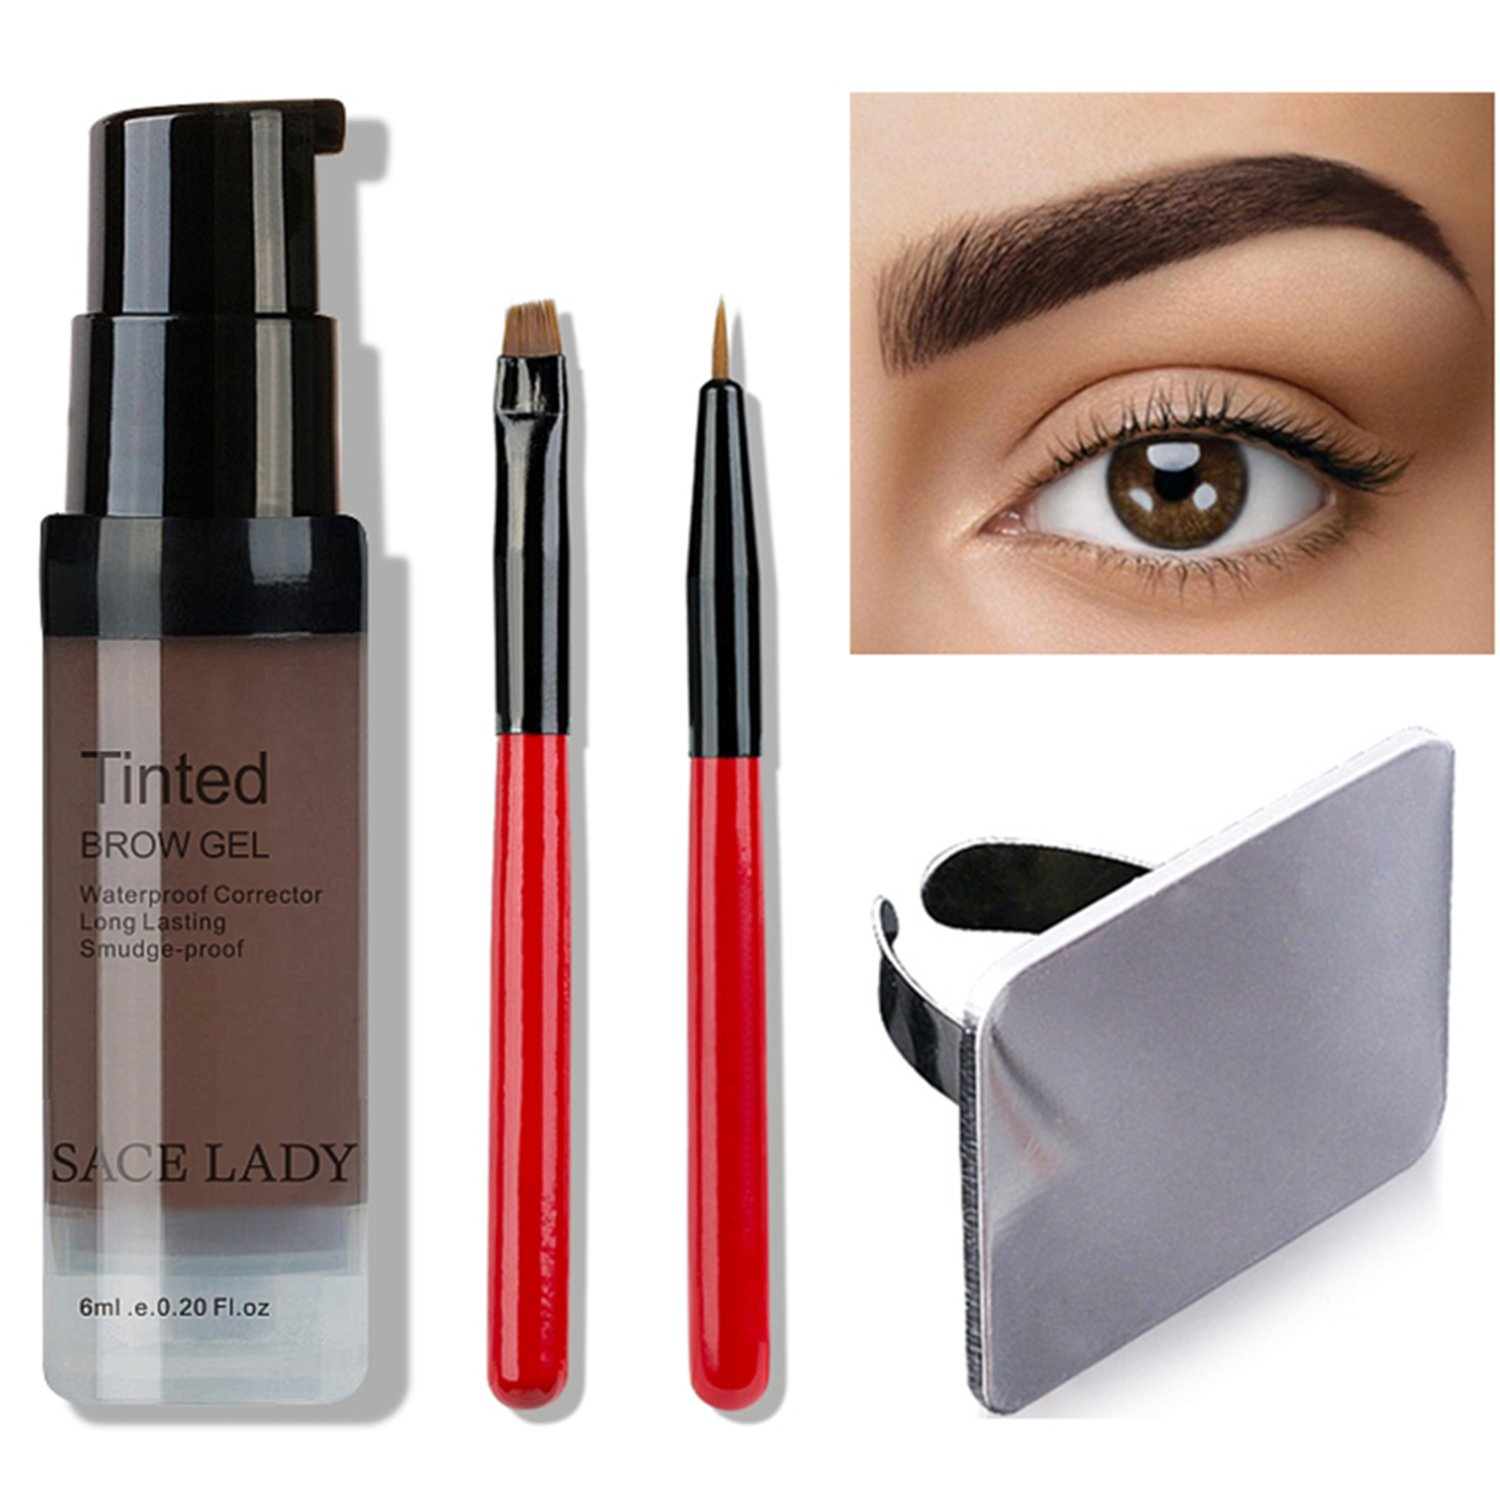 SACE LADY Semi Permanent Eyebrow Gel Makeup Kit, Waterproof Tint Brow Enhancer Color Gel with Eyebrow Sculpting Brushes, Makeup Mixing Blending Palette Tool (6.Blonde)